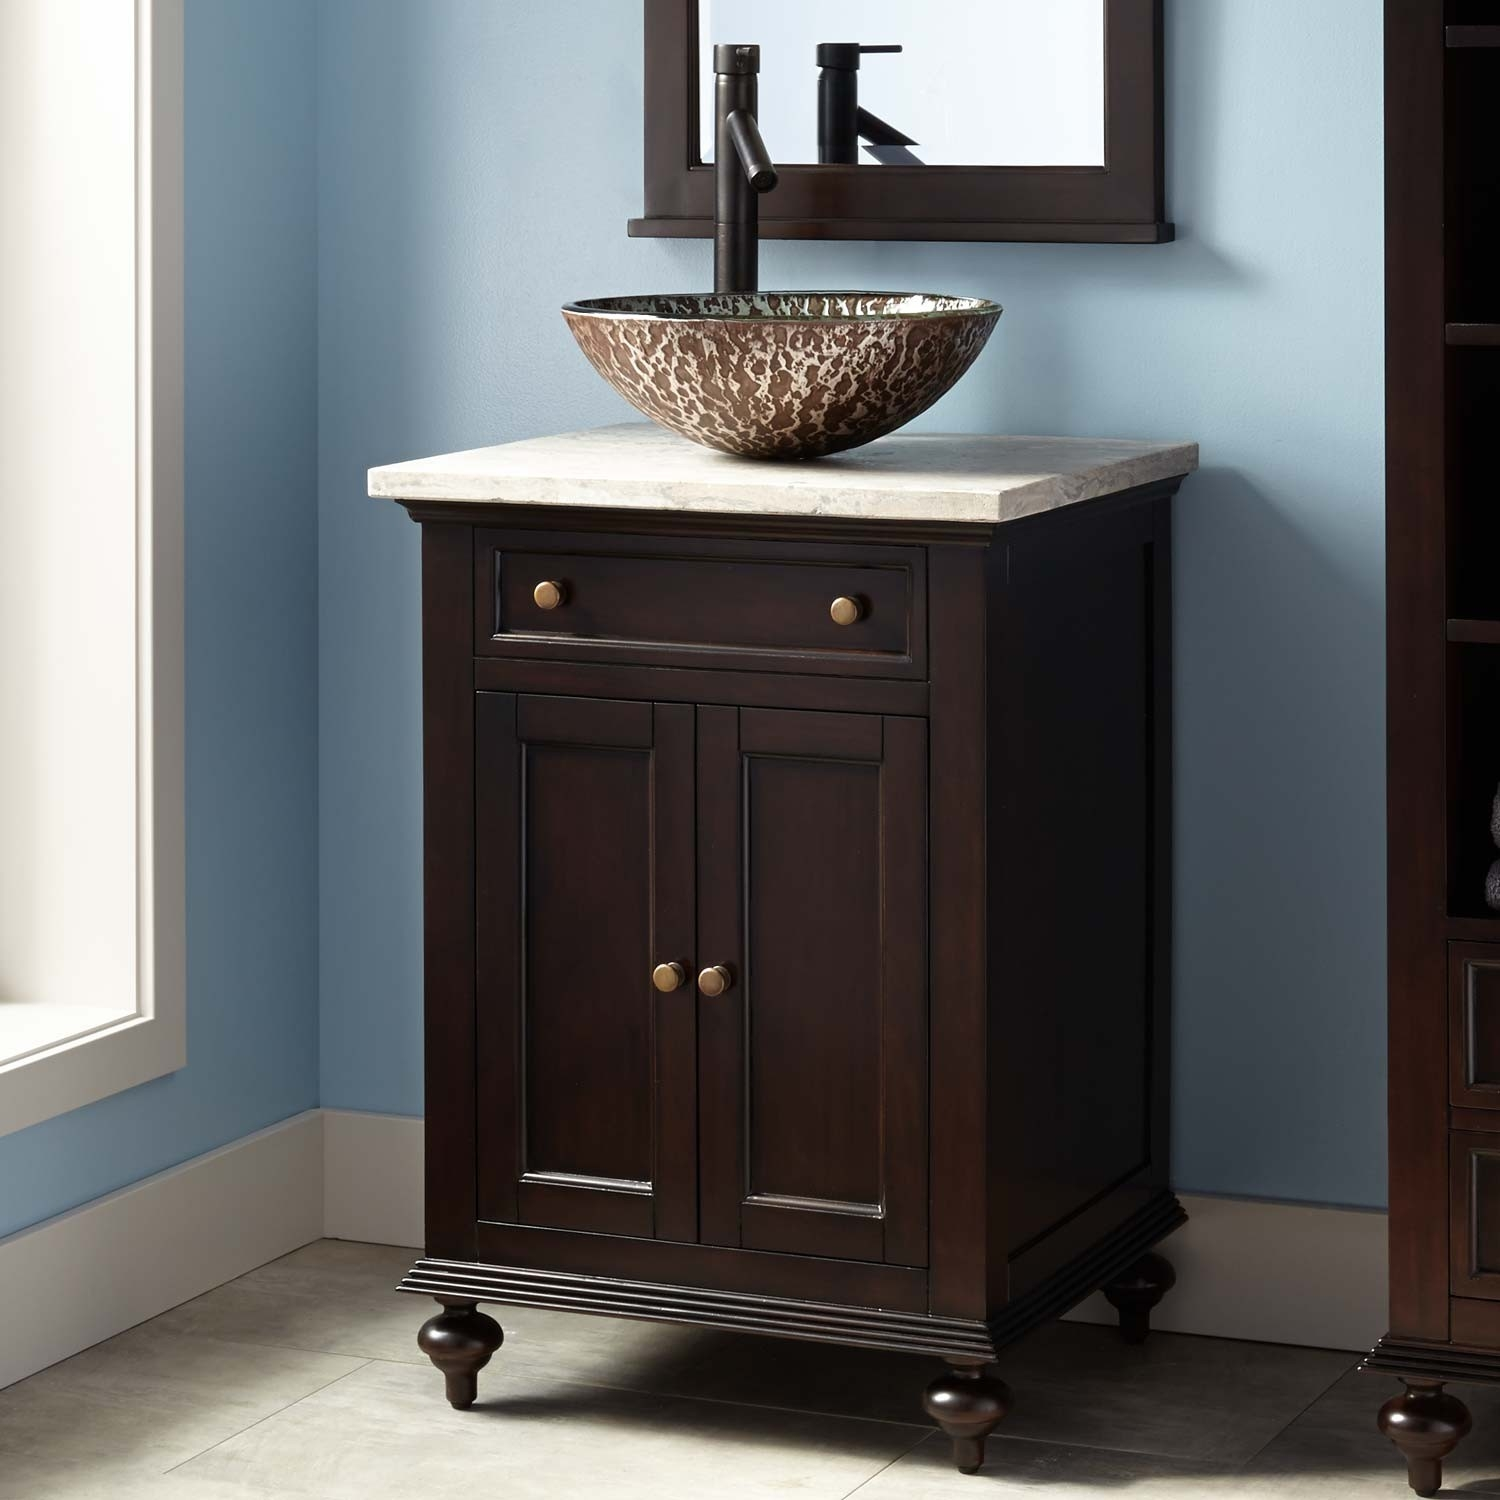 28 Inch Bathroom Vanity With Vessel Sink